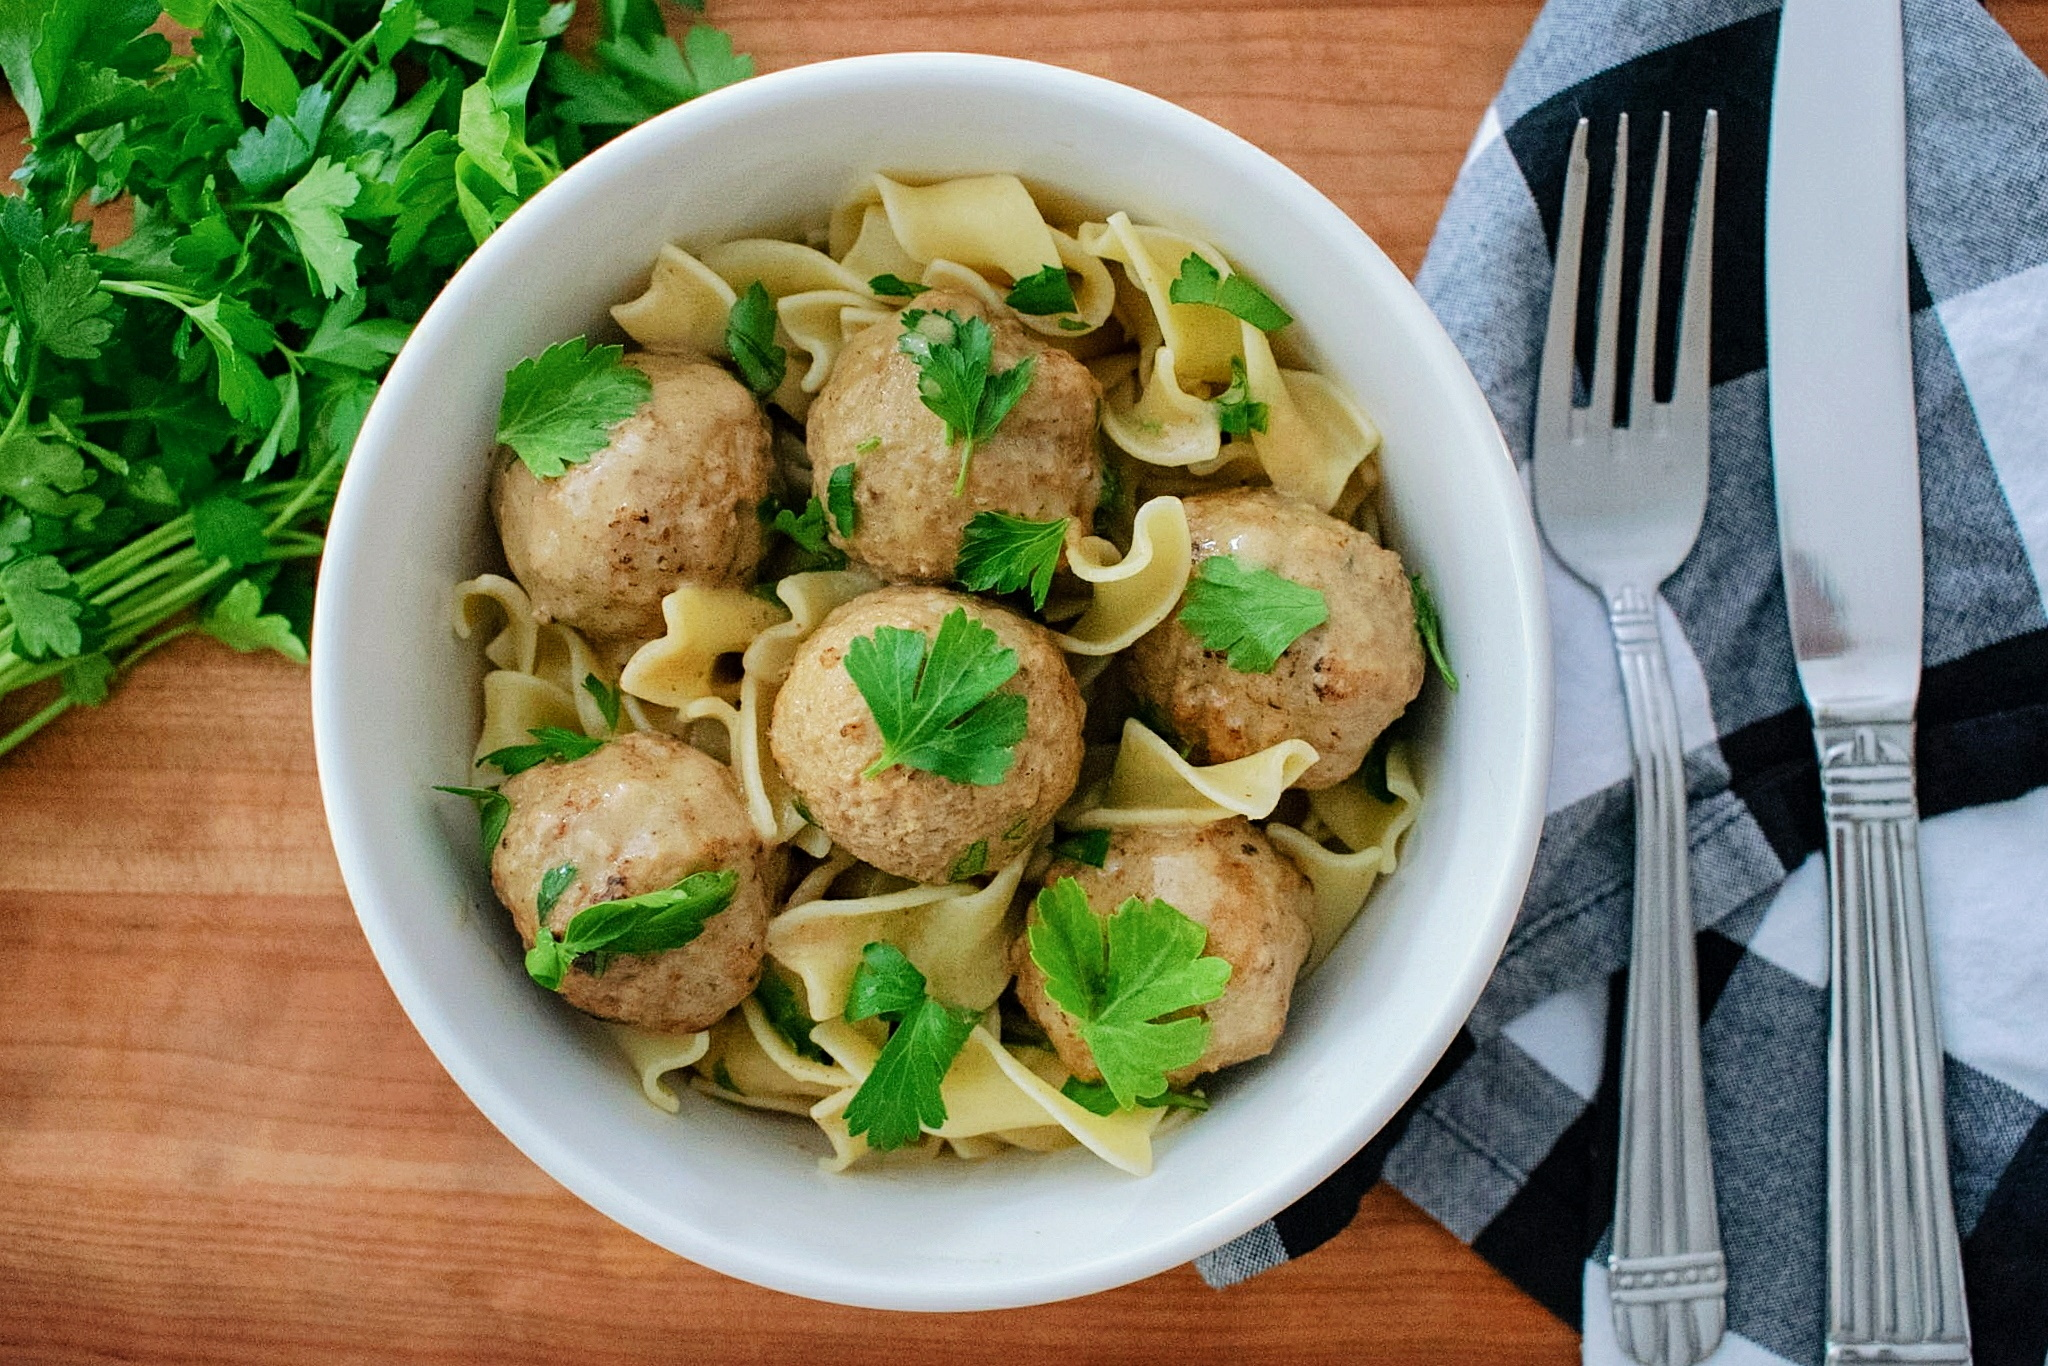 Egg noodles topped with swedish meatballs and a sprinkle of fresh parsley